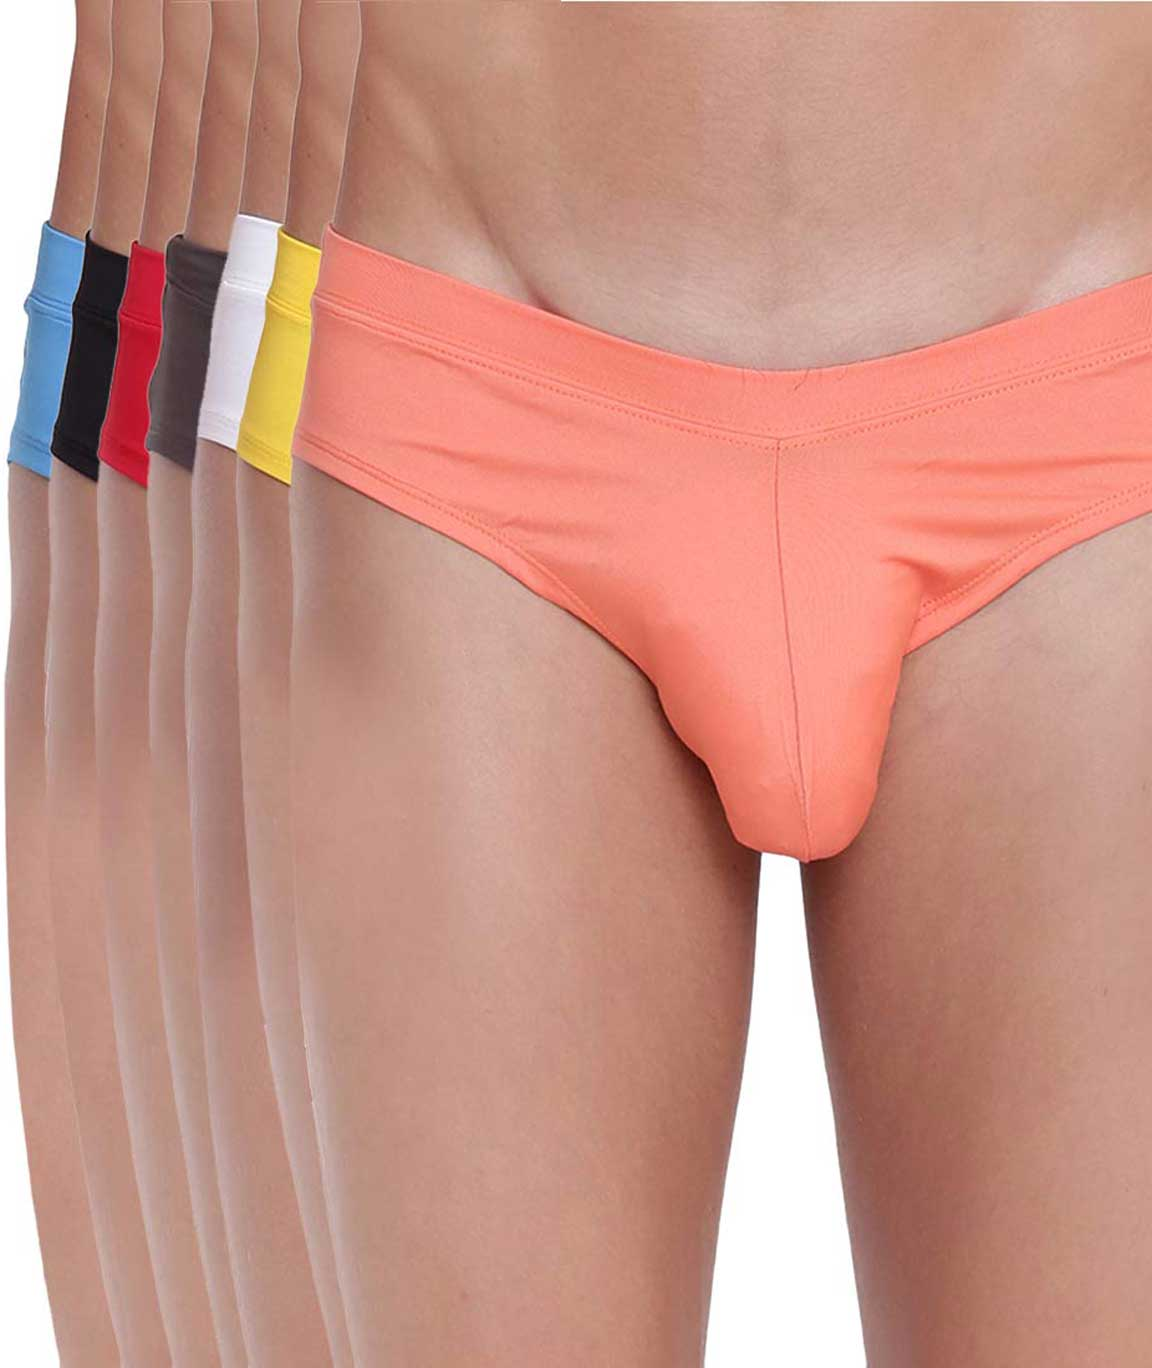 BASIICS Fanboy Style Brief by La Intimo (Pack of 7)